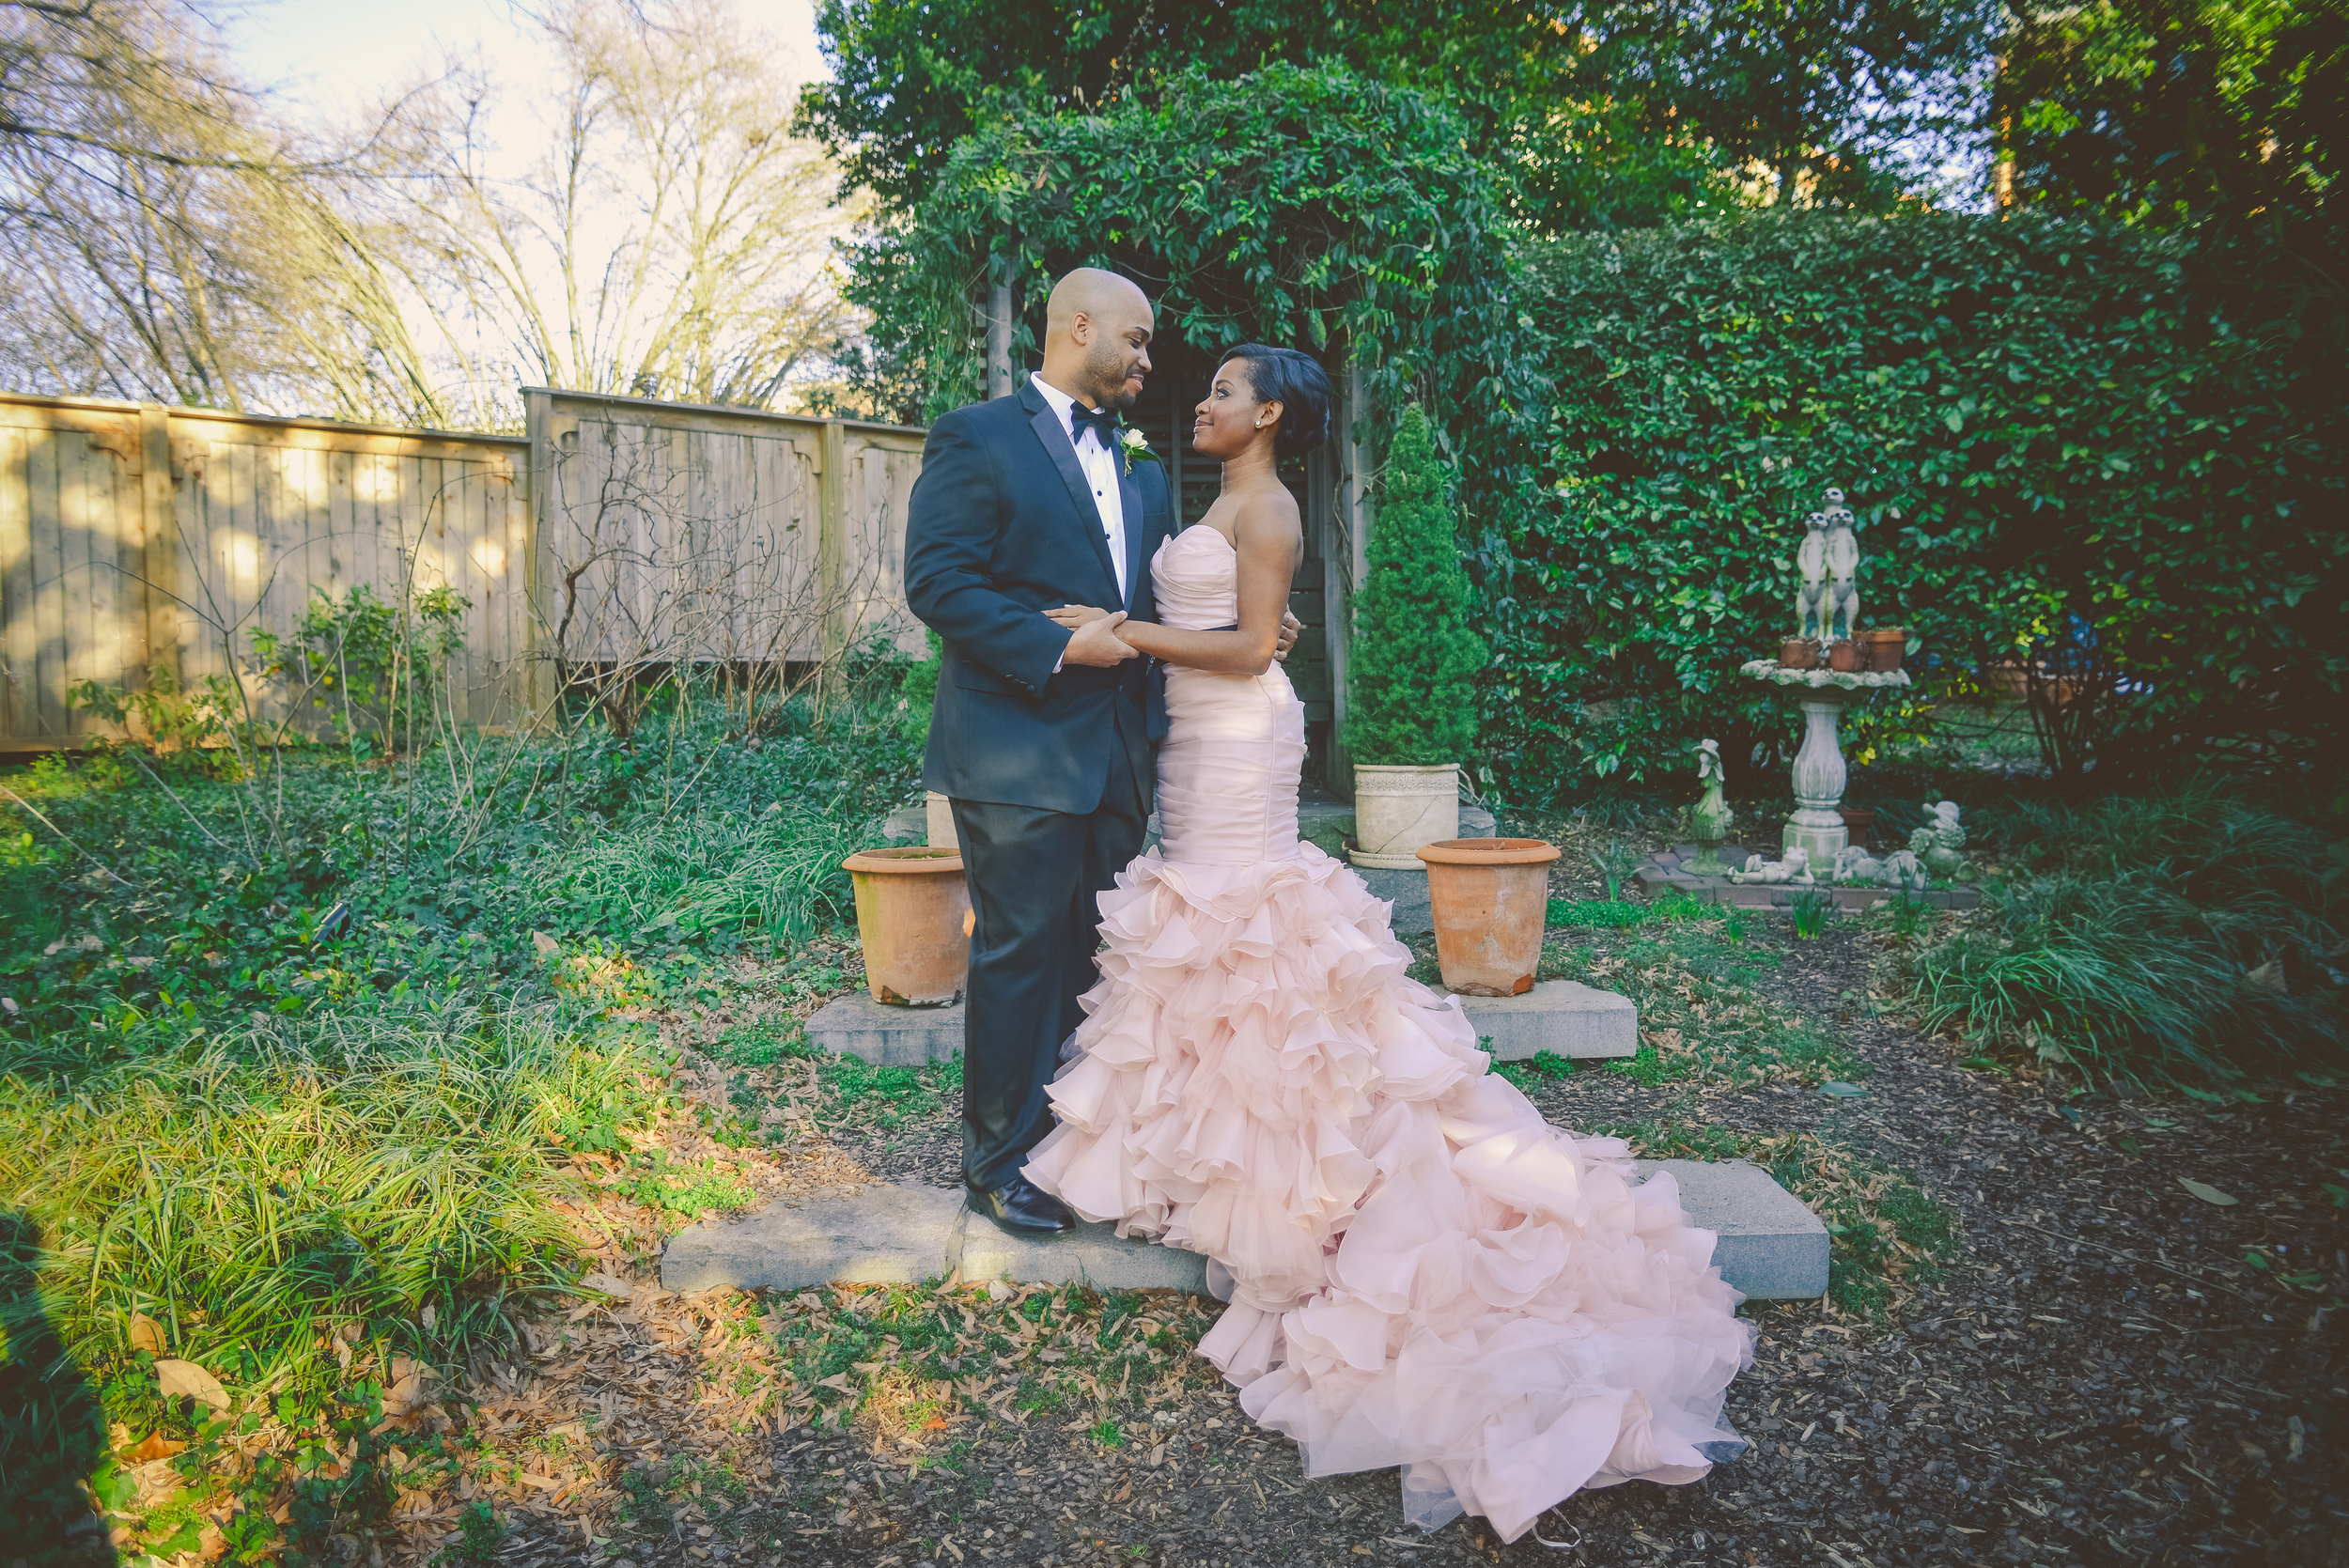 KrisandraEvans.com | Atlanta Wedding Photography | The Trolley Barn